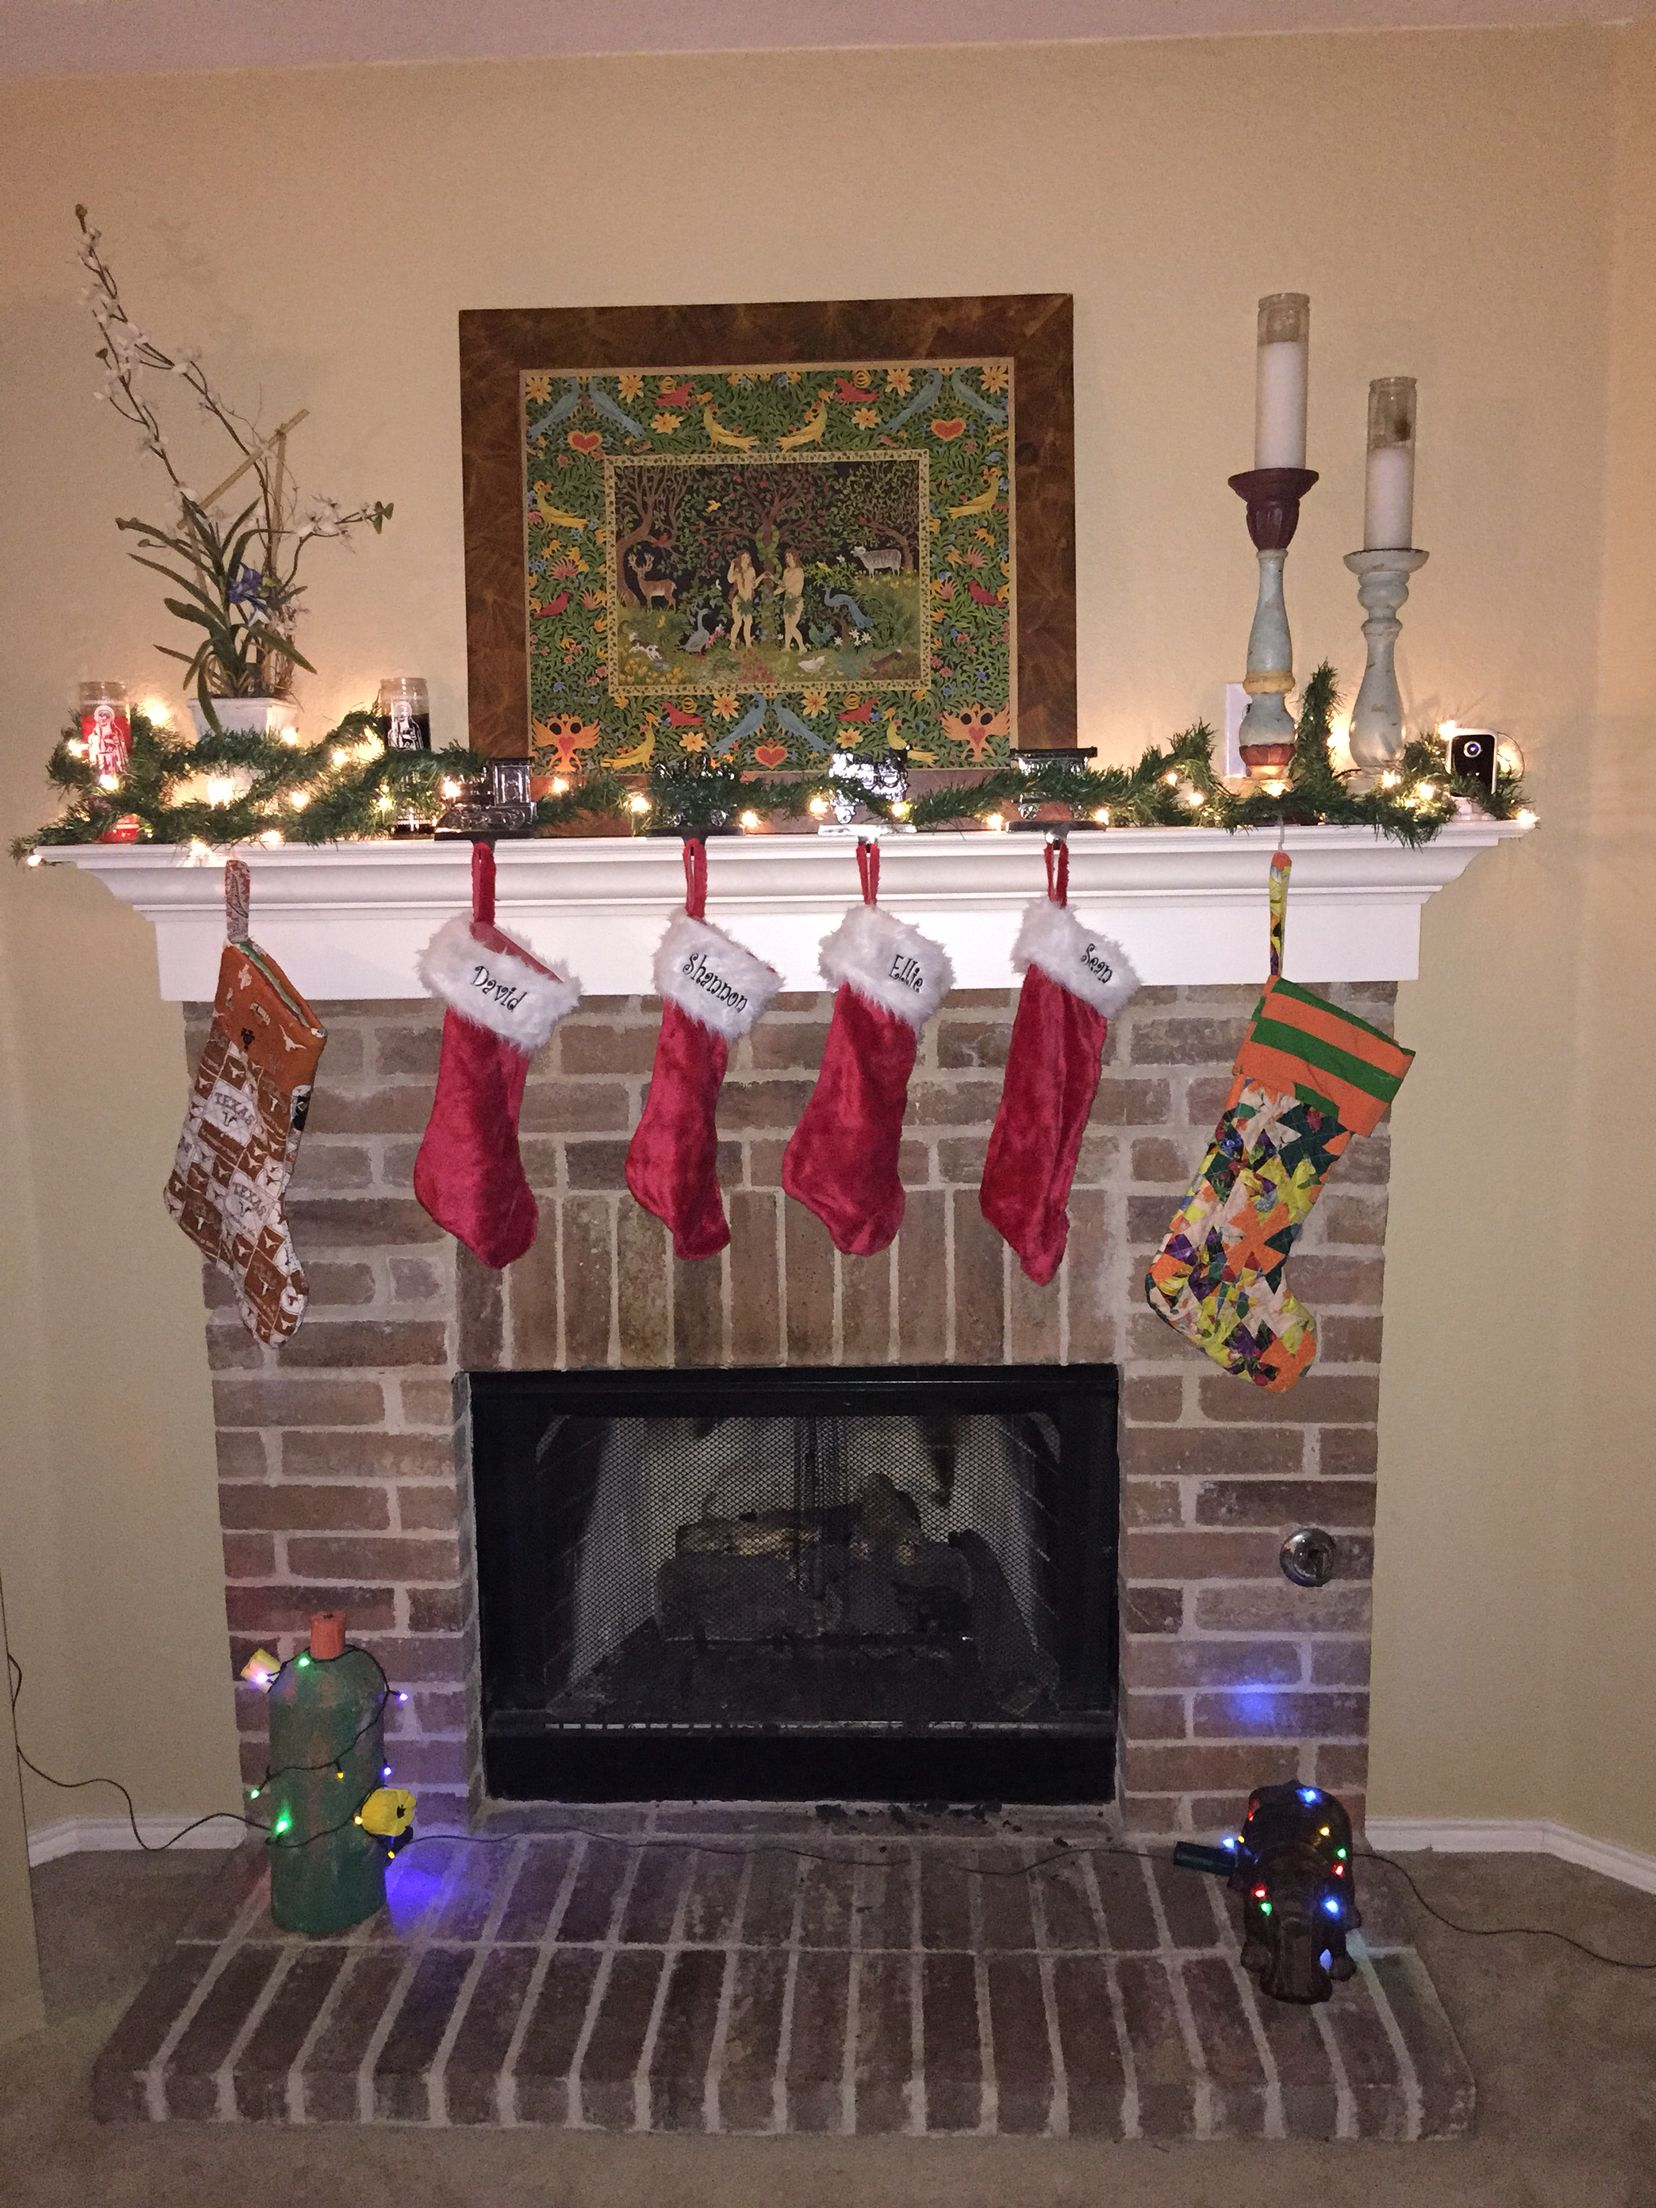 Christmas is coming. The stockings are hung with care.